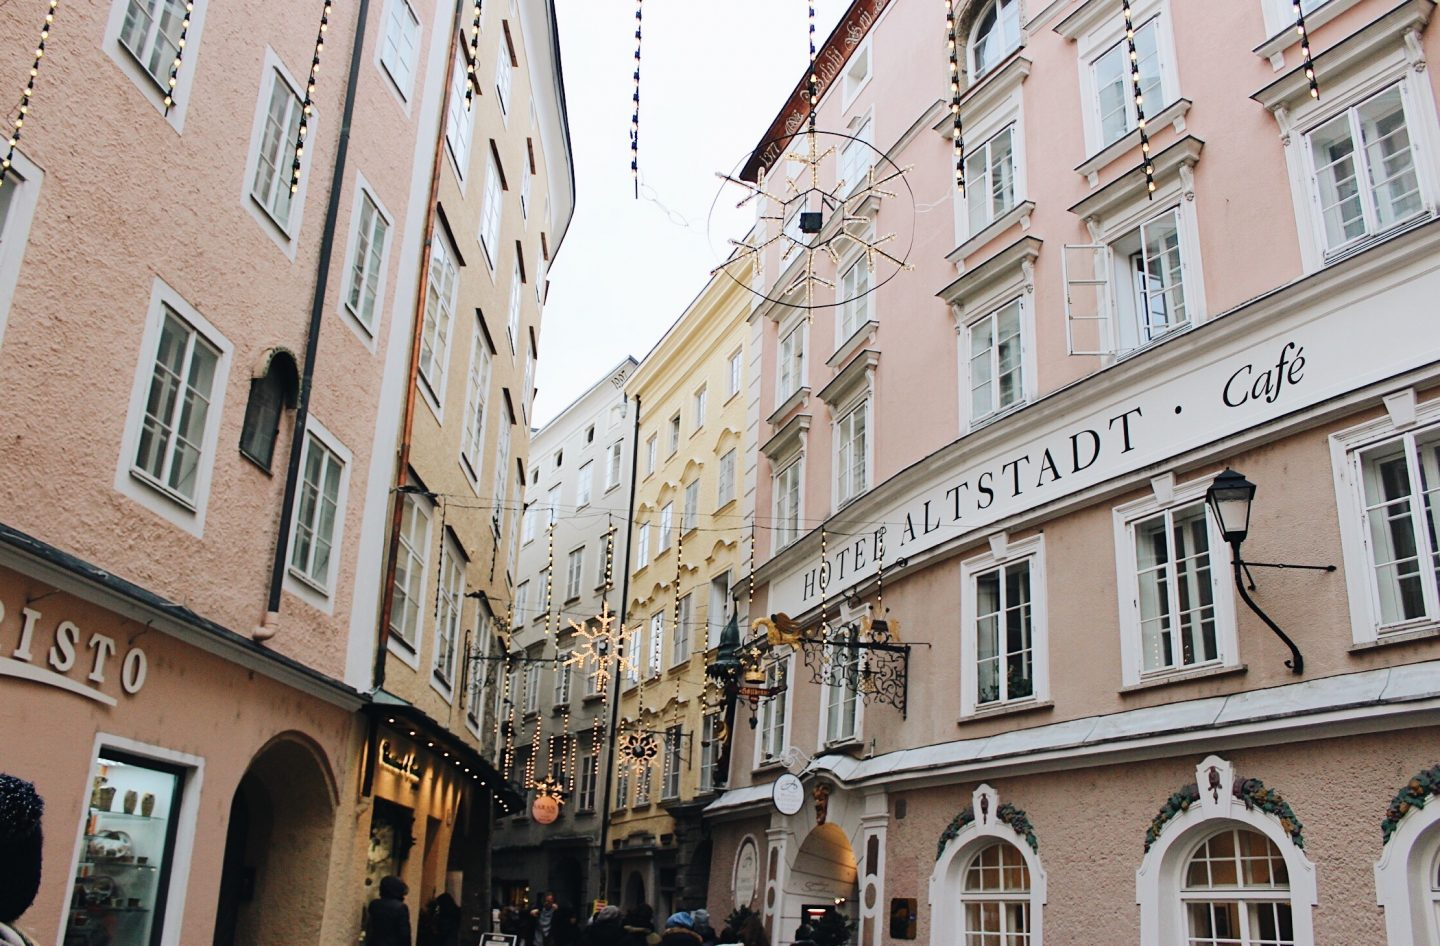 The decorated streets of Salzburg, Austria!